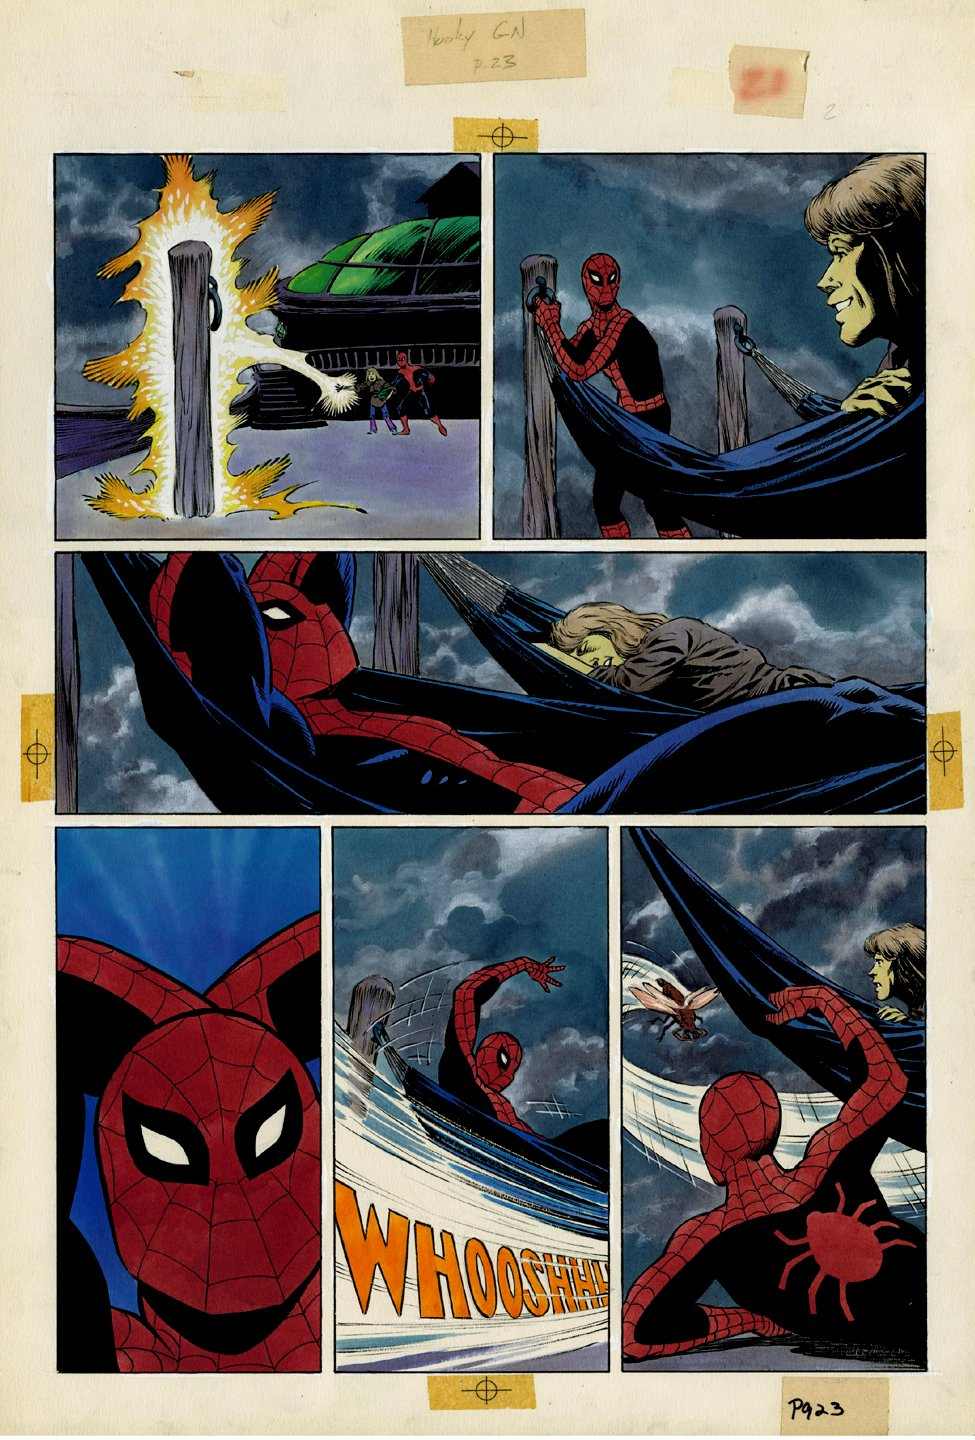 Amazing Spider-Man: Hooky Marvel Graphic Novel Page 23 Painting (SPIDER-MAN IN EVERY PANEL!) Large Art - 1986